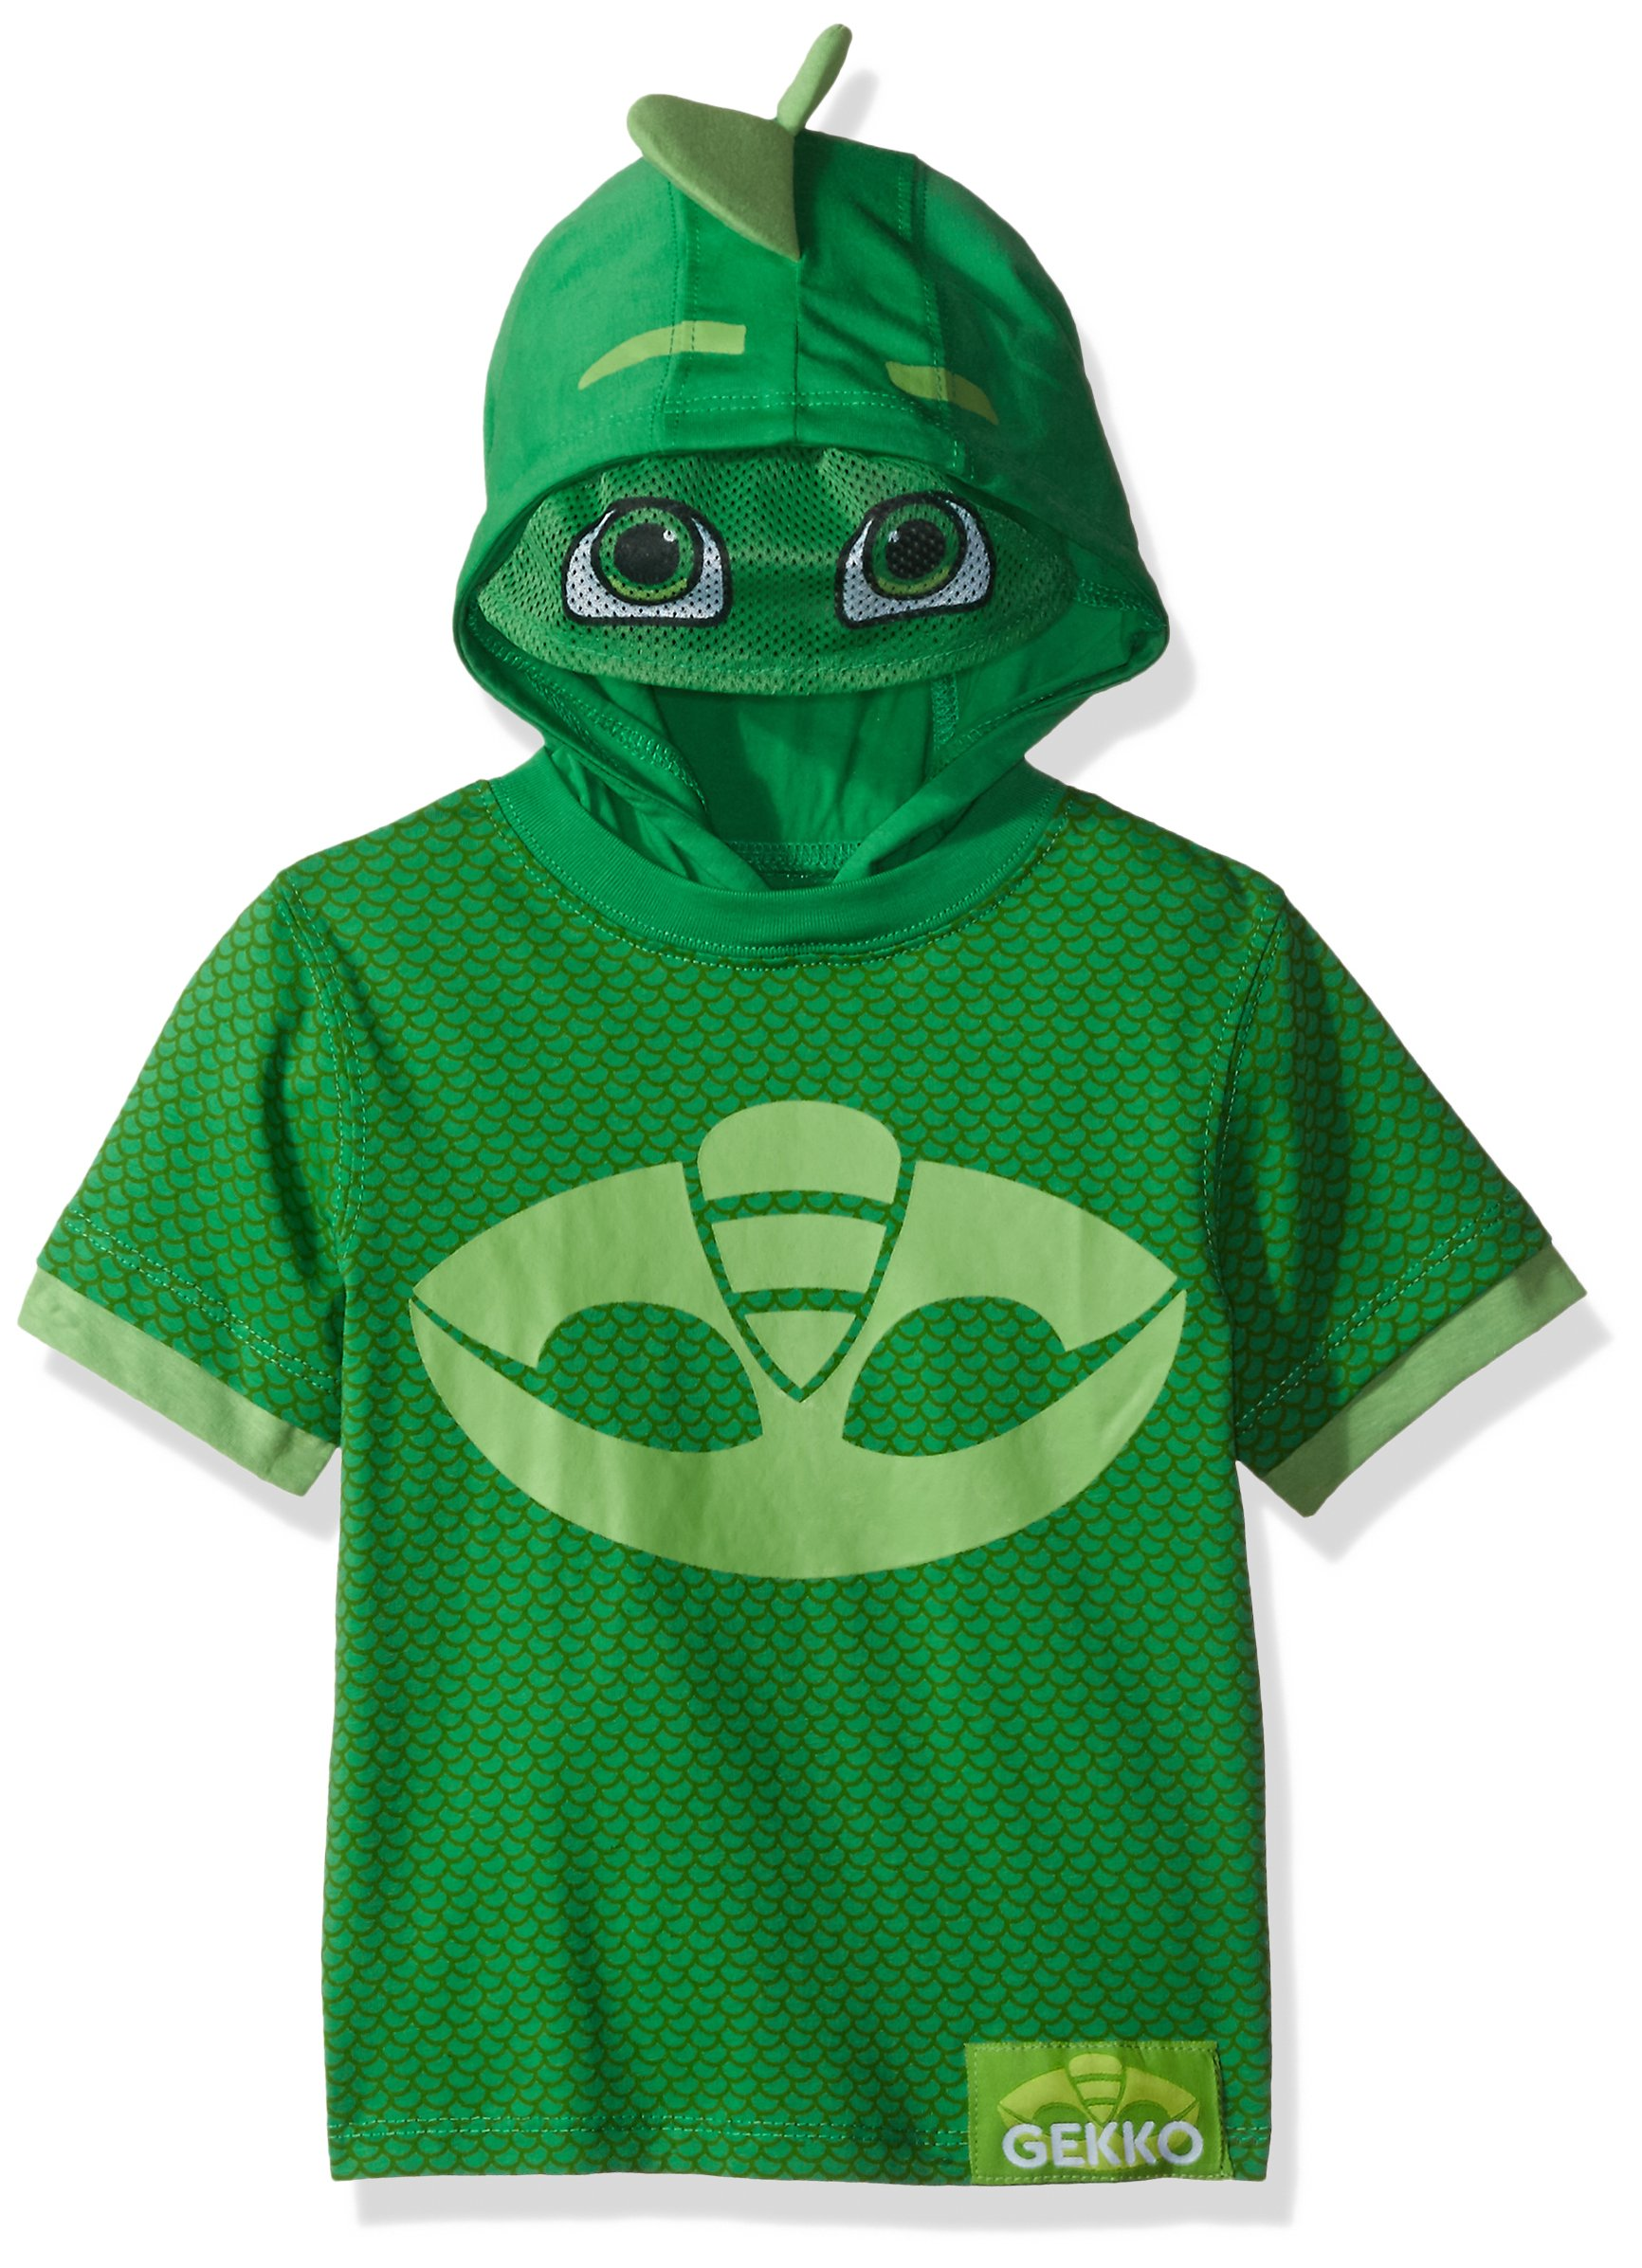 PJMASKS Toddler Boys' Gekko and Catboy Hoodie, Green Short Sleeve, 2T